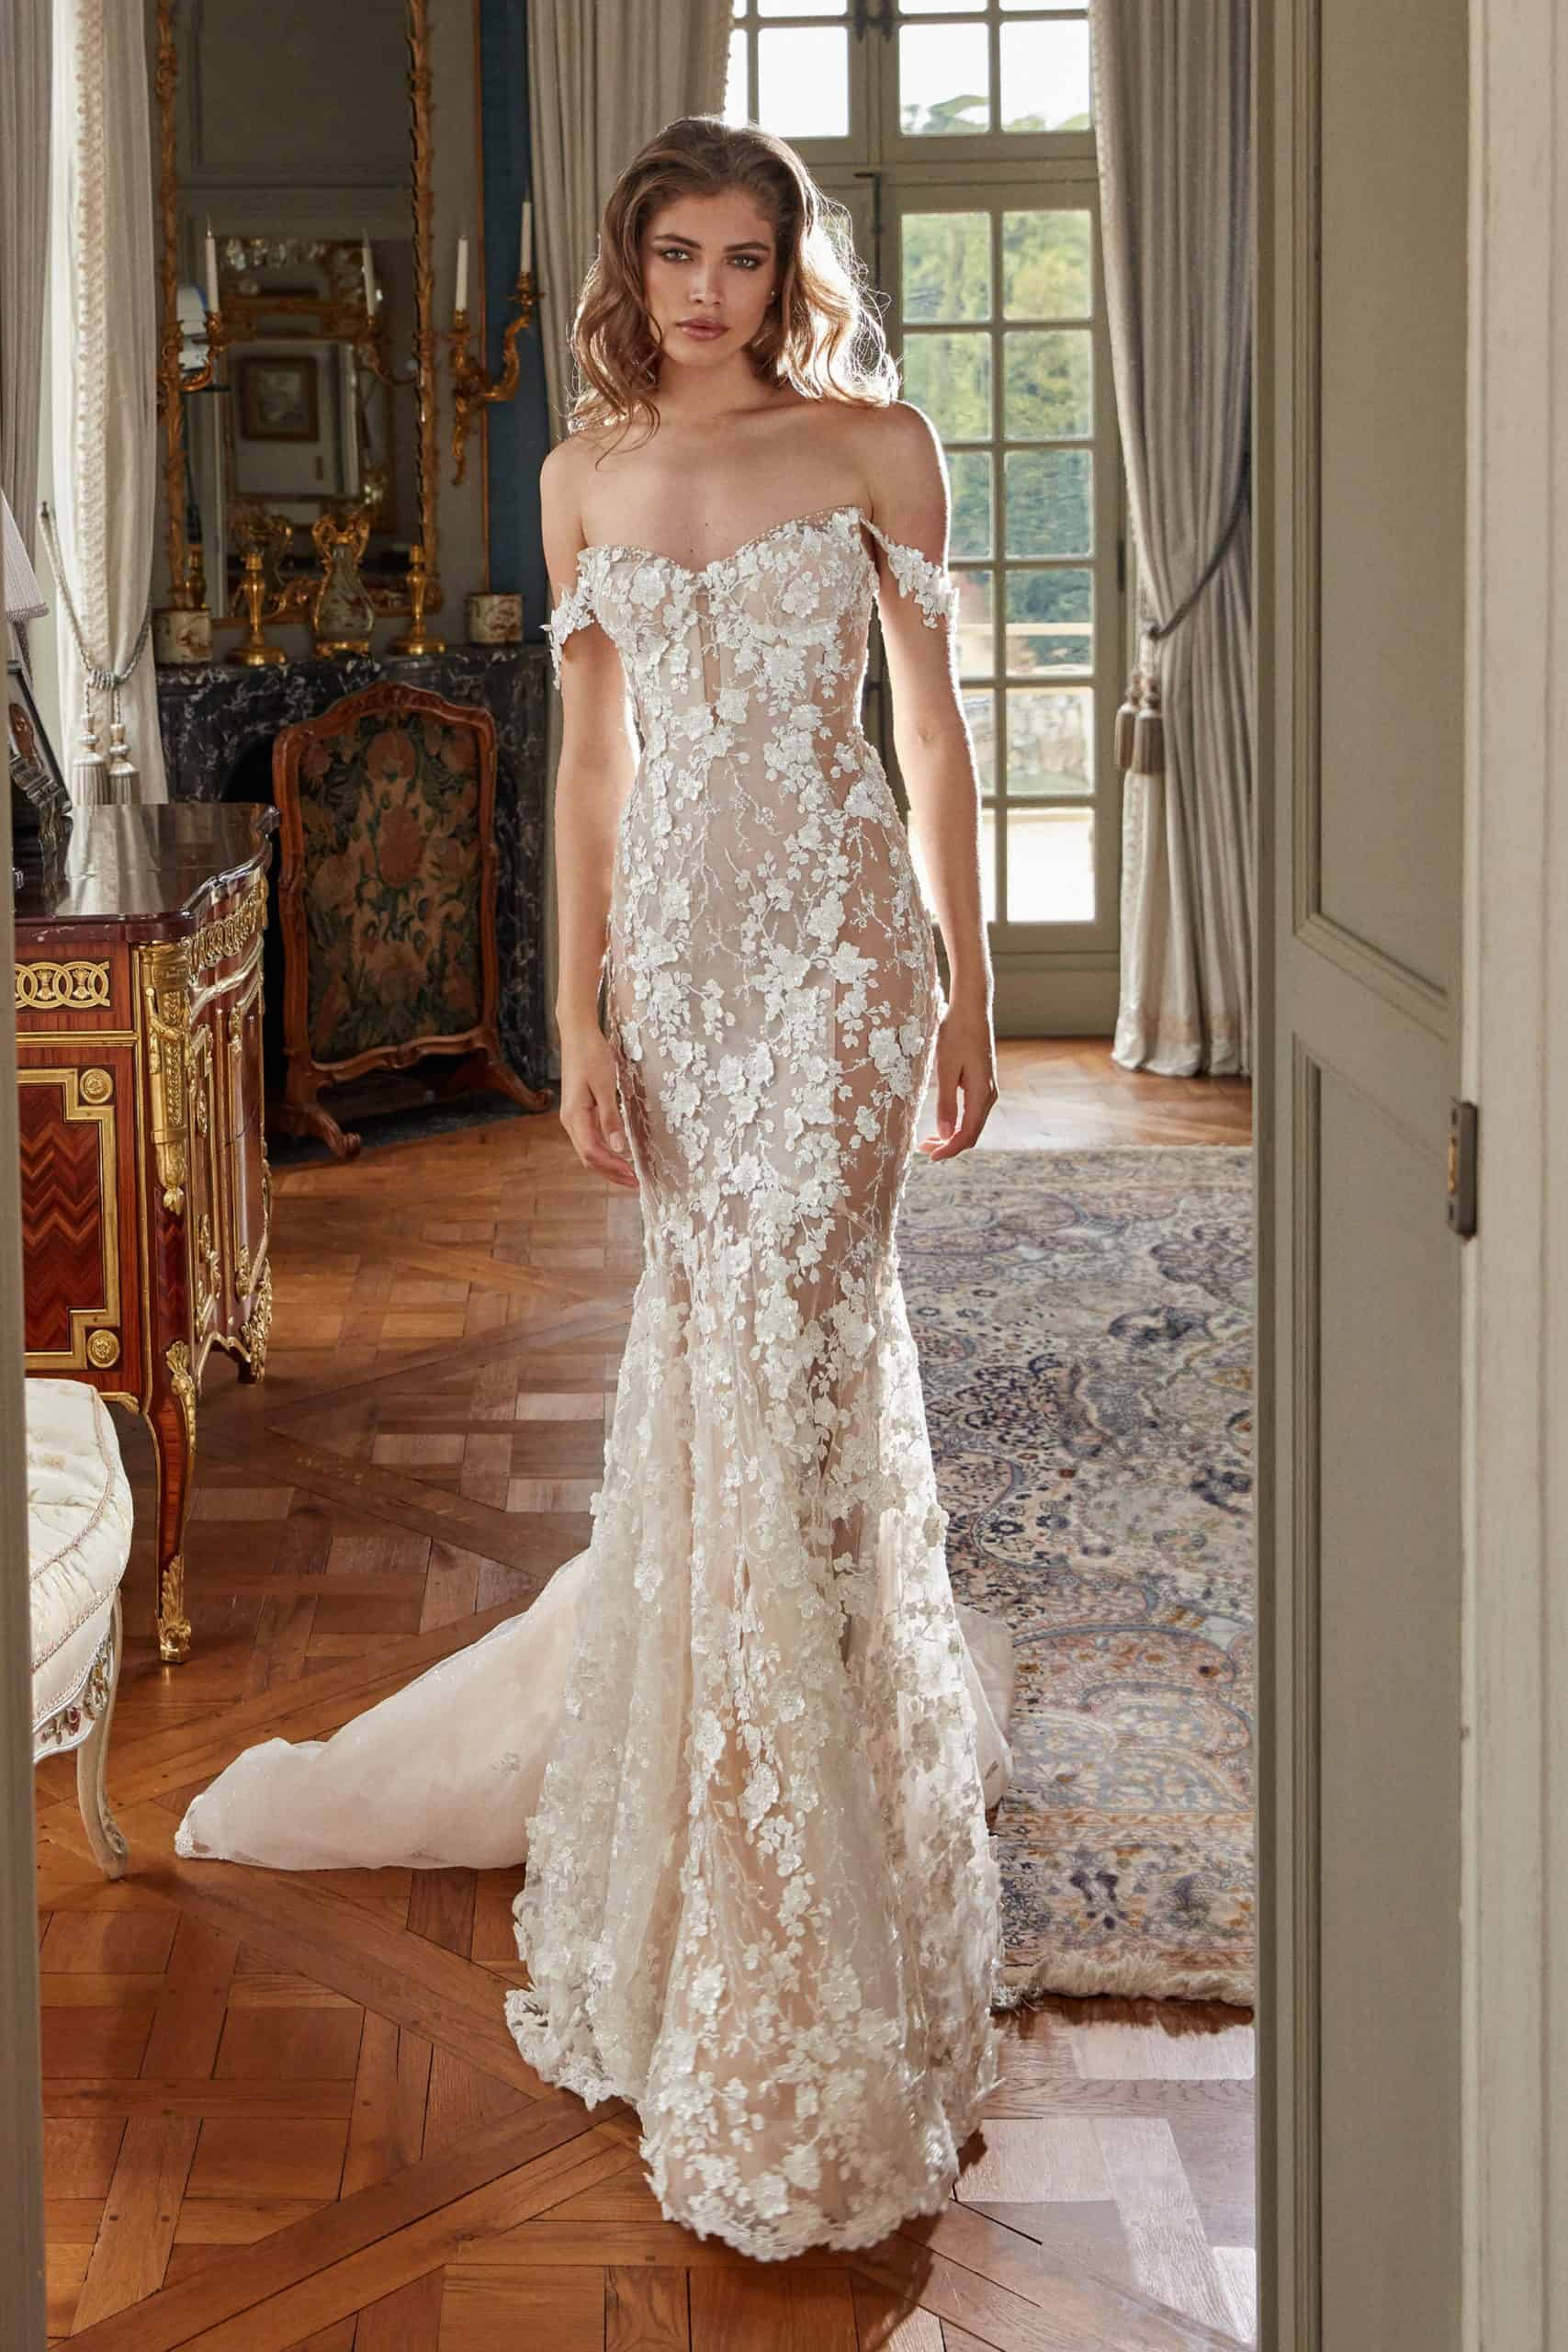 lace wedding dress with embossed floral lace by Galia Lahav